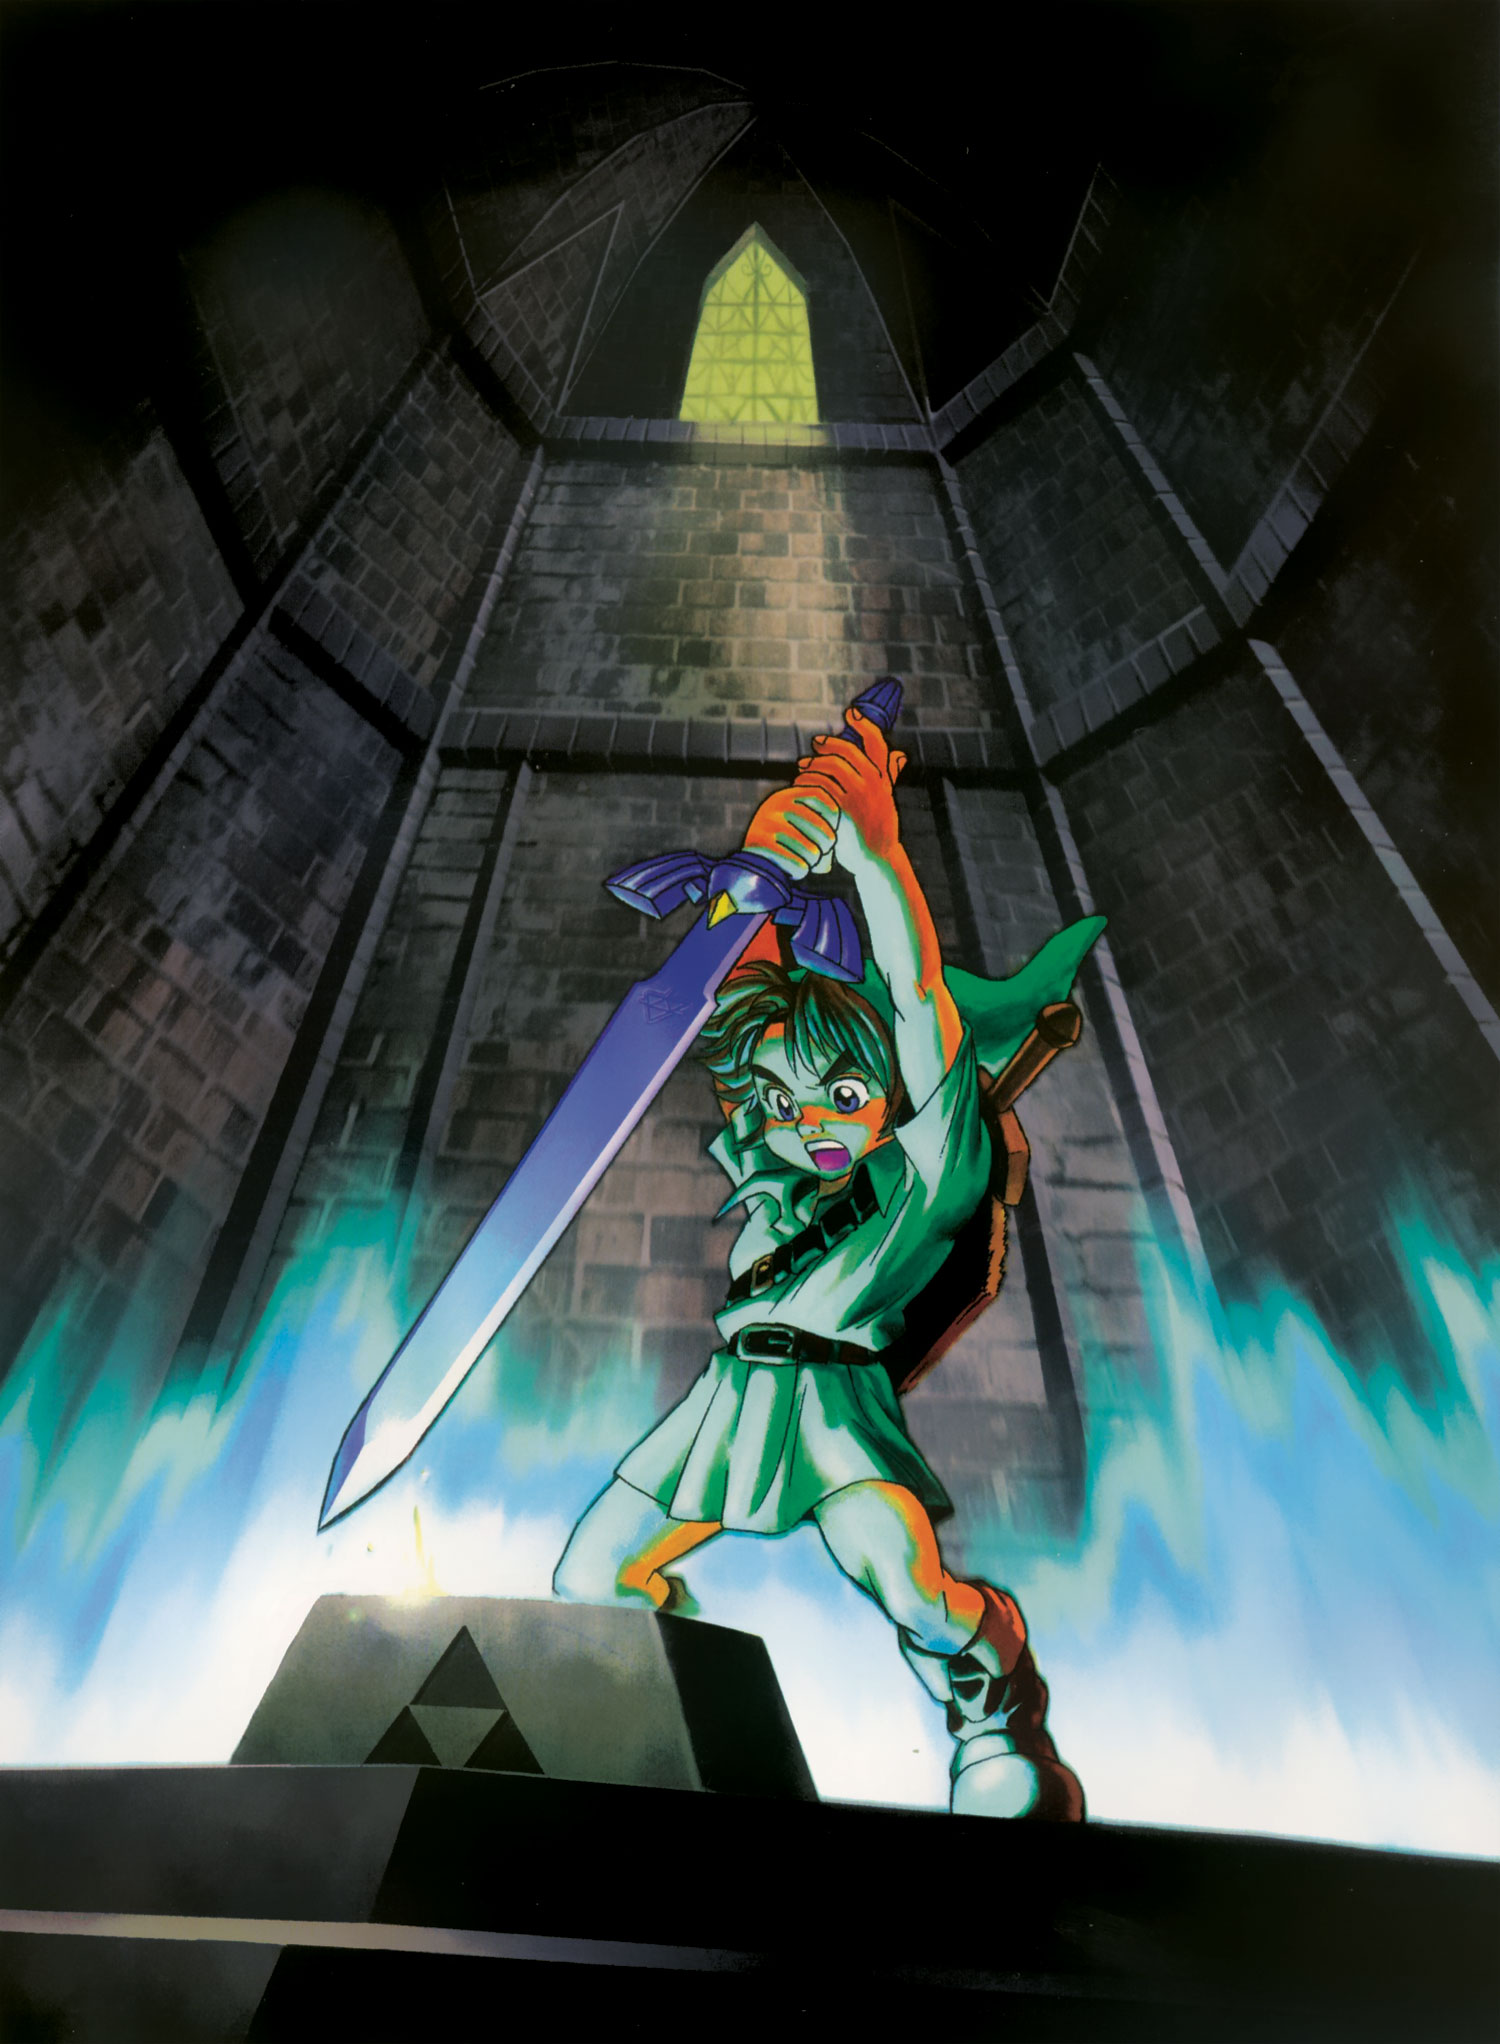 Legend of Zelda master sword